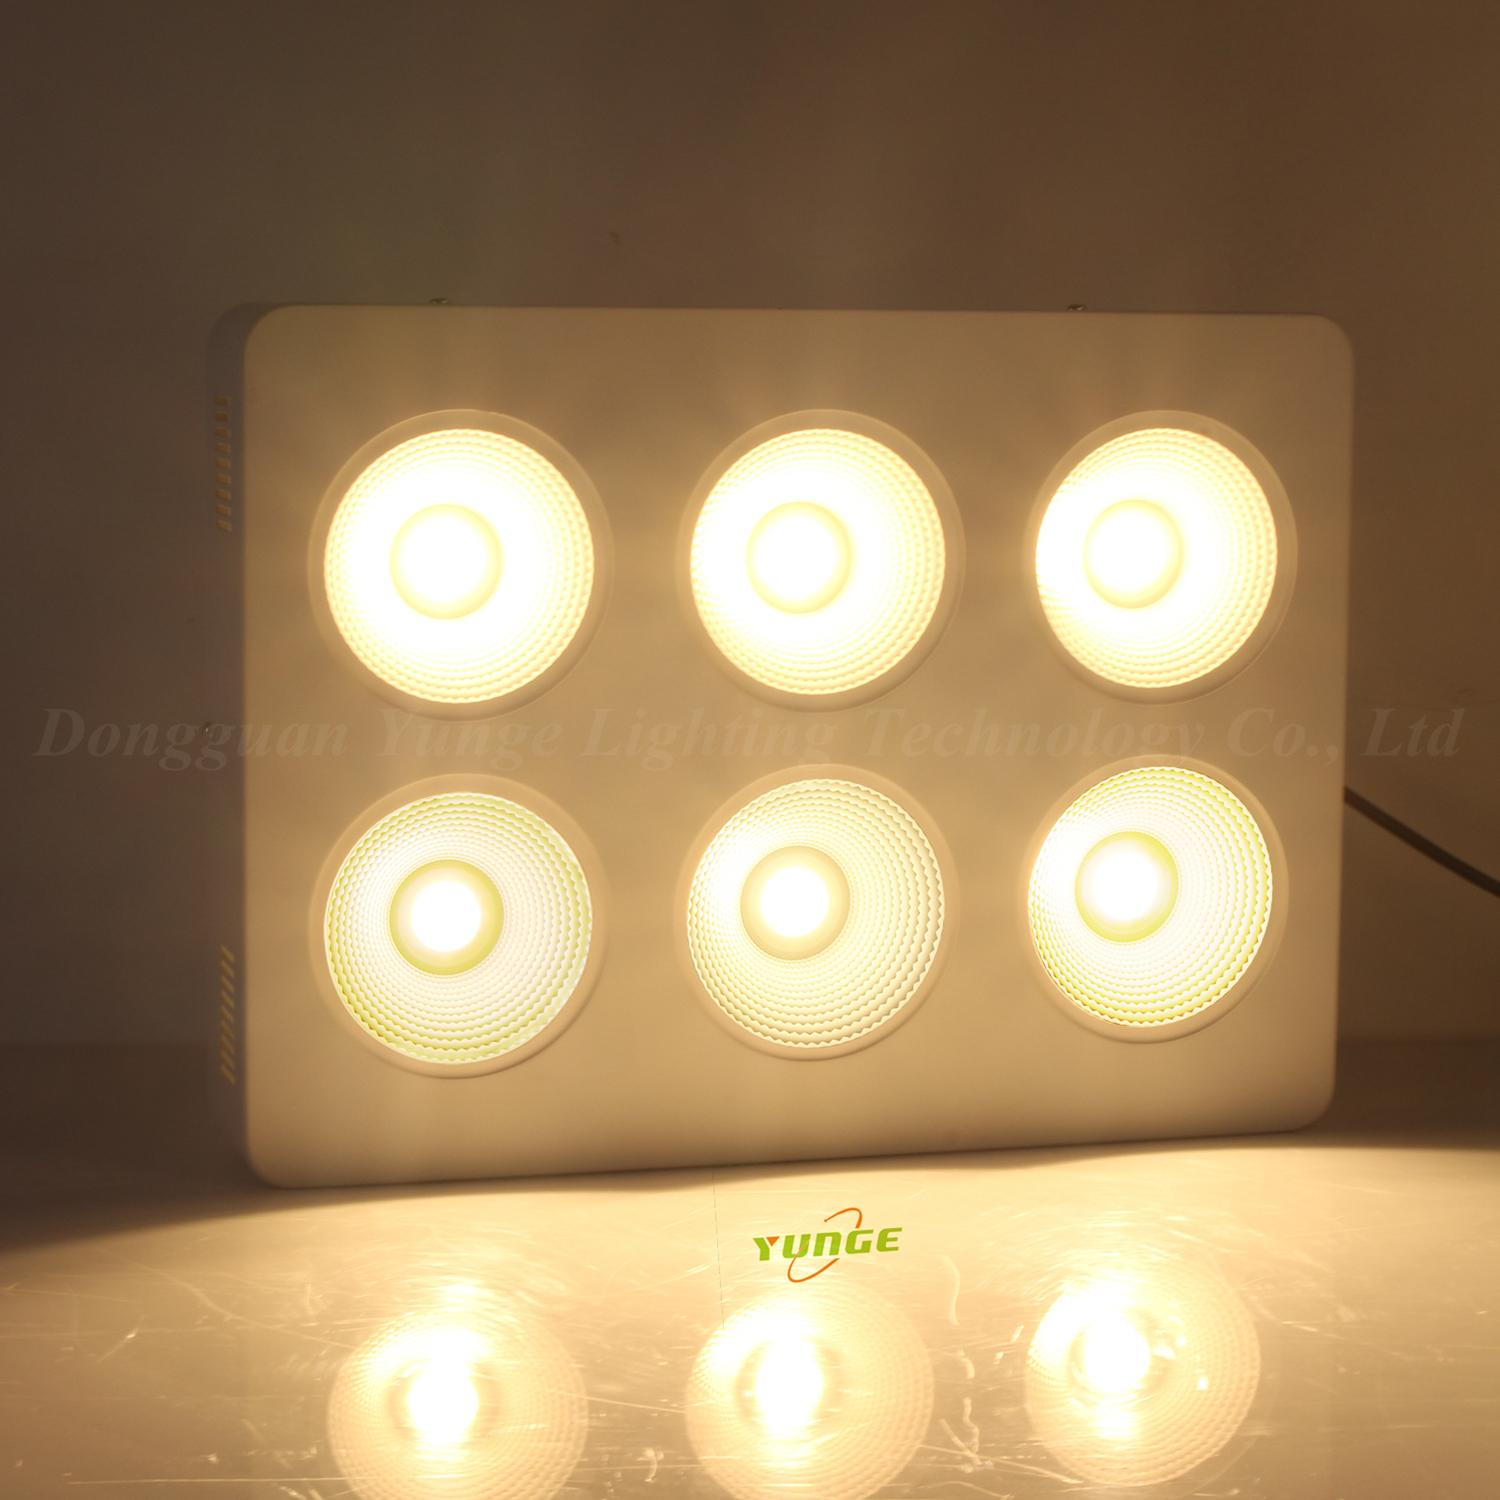 1200W COB LED plant grow light,High quality CREE chip,high Lumious flux lamp. 6